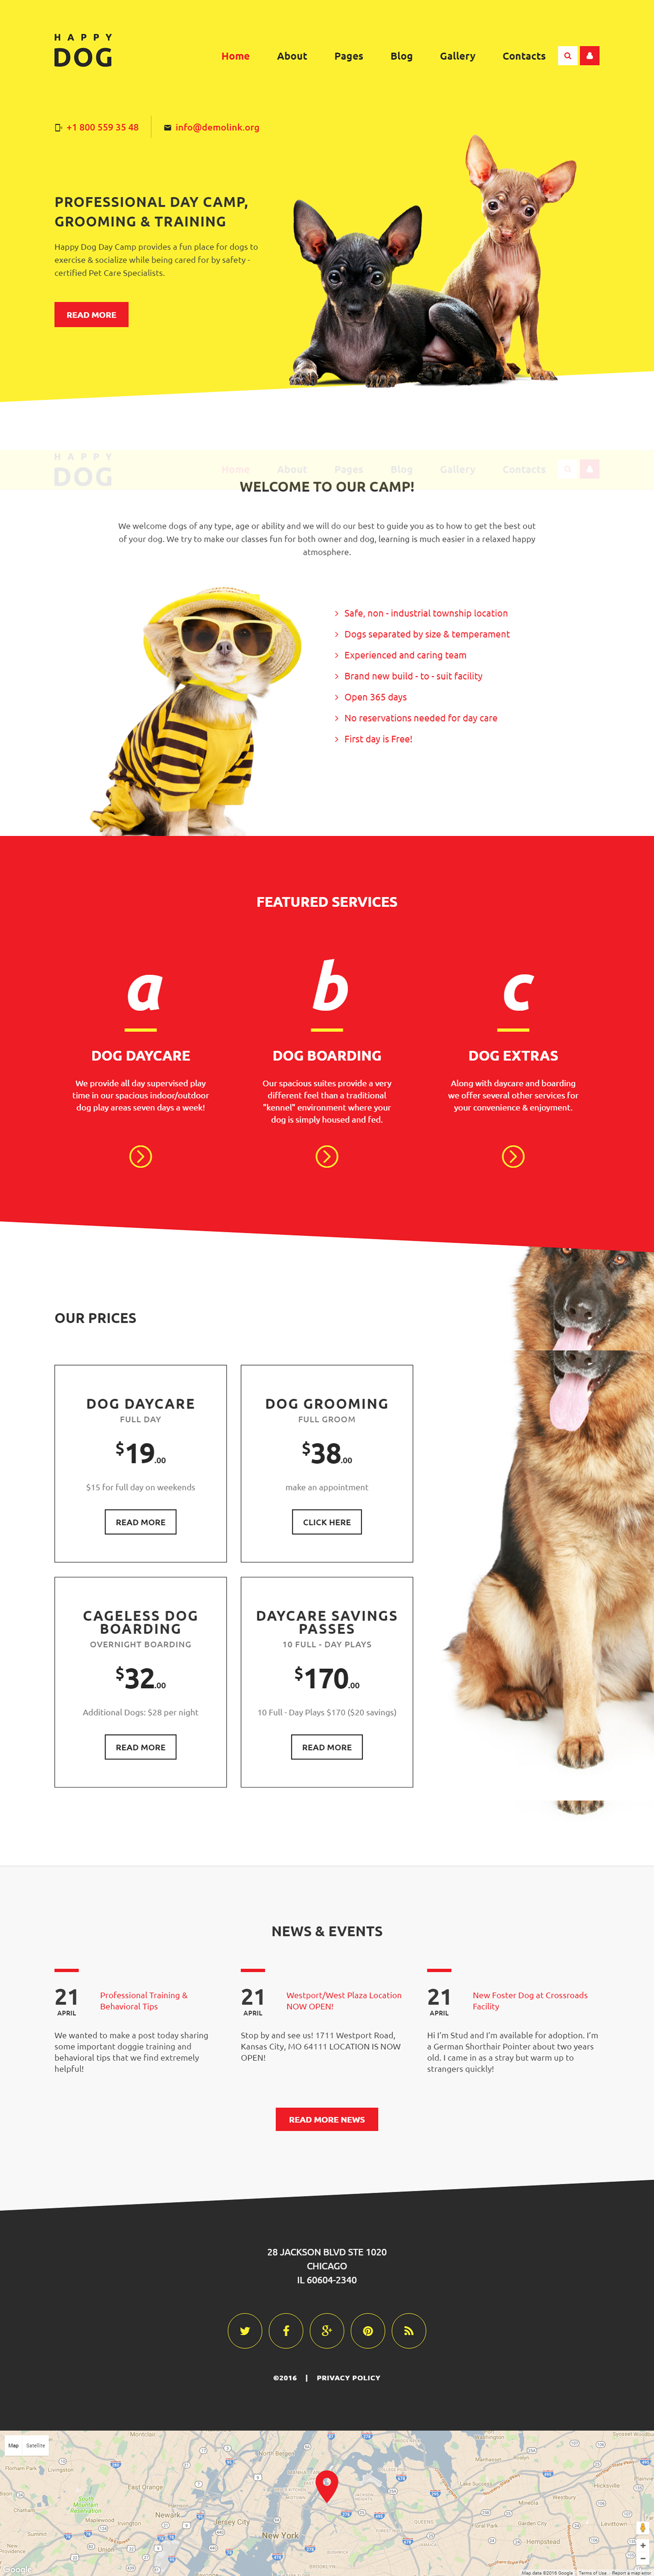 Dogs Responsive Joomla Template ✓ Website 58559. Buy Dogs Joomla ...